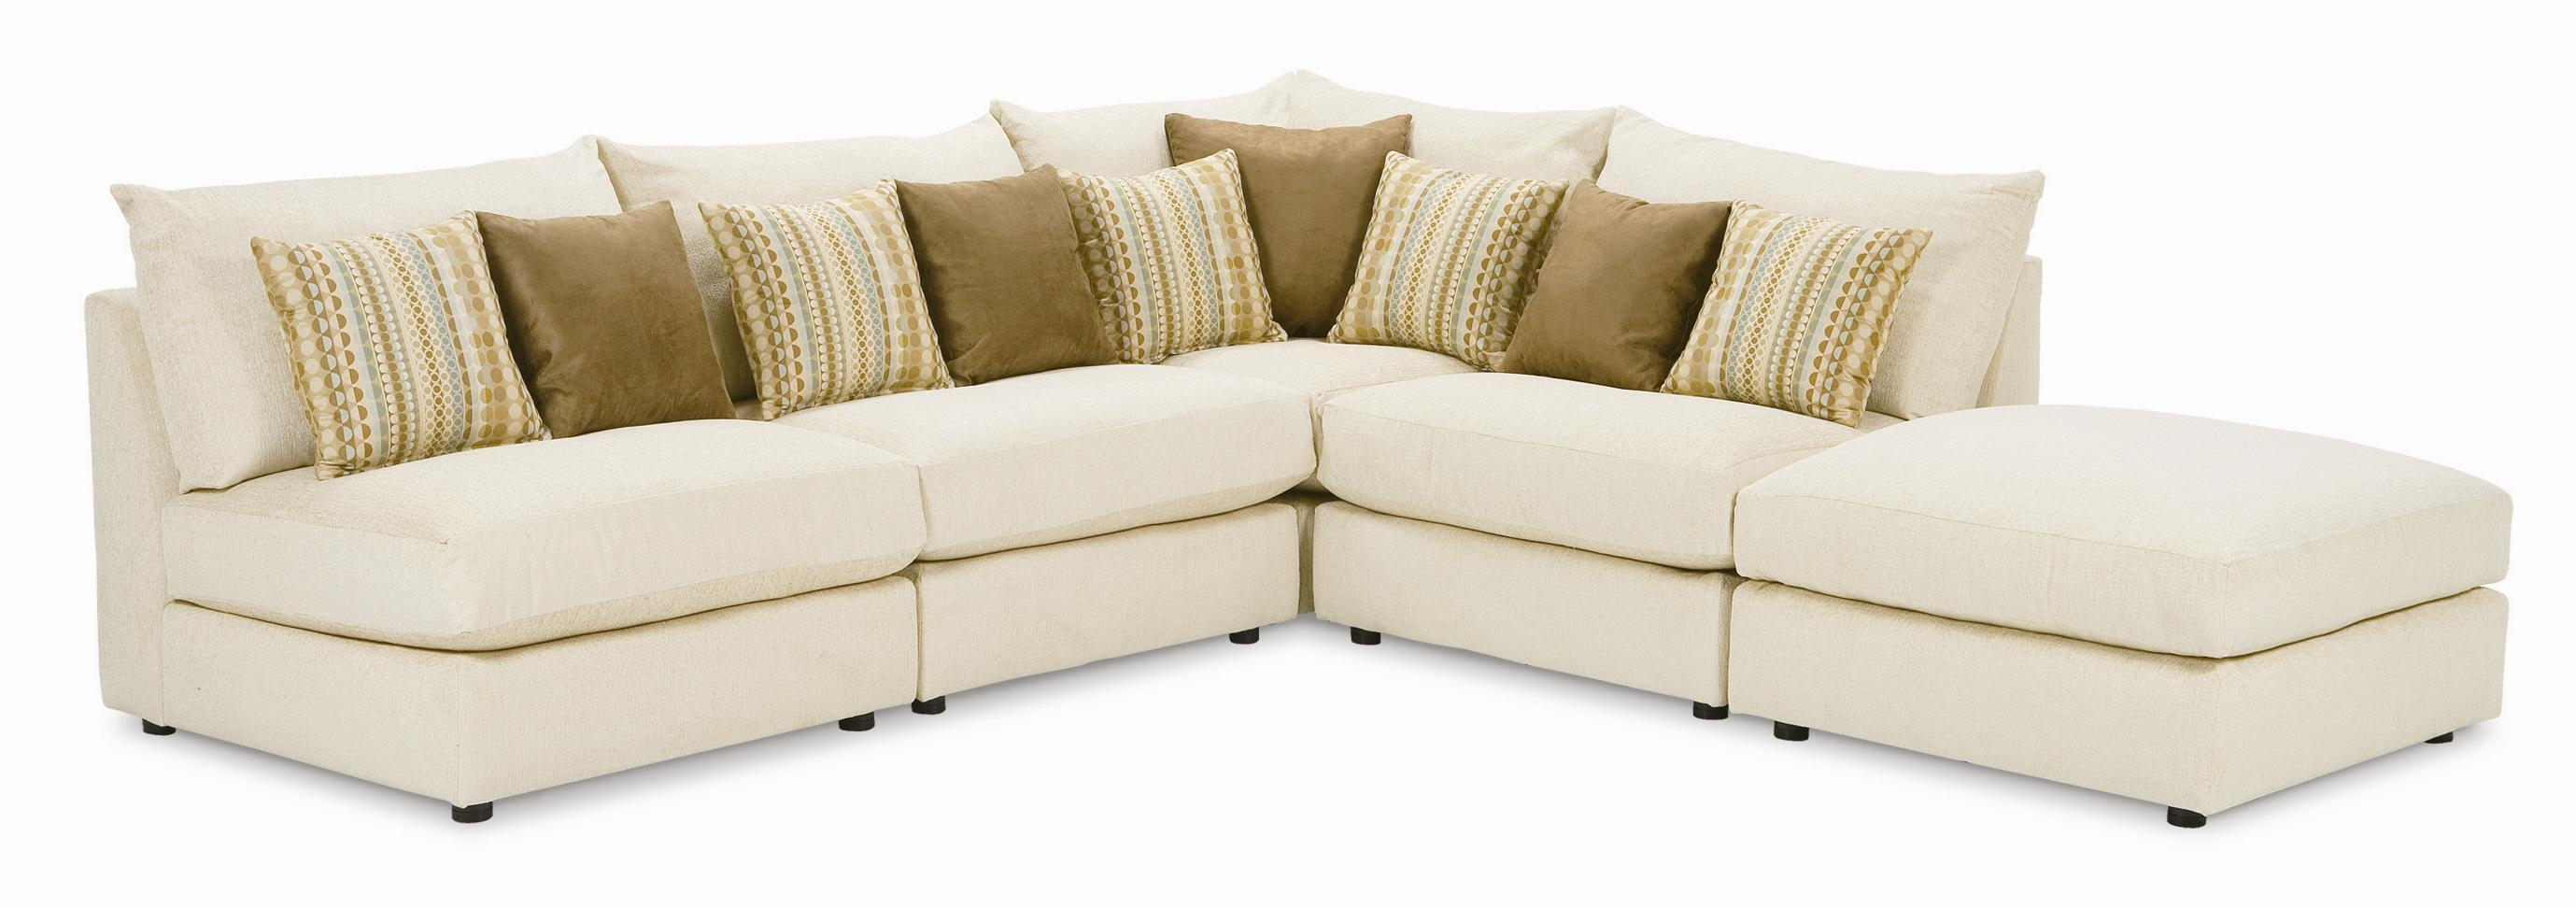 Rowe Tempo Five Piece Armless Sectional Sofa - Ahfa - Sofa intended for Armless Sectional Sofa